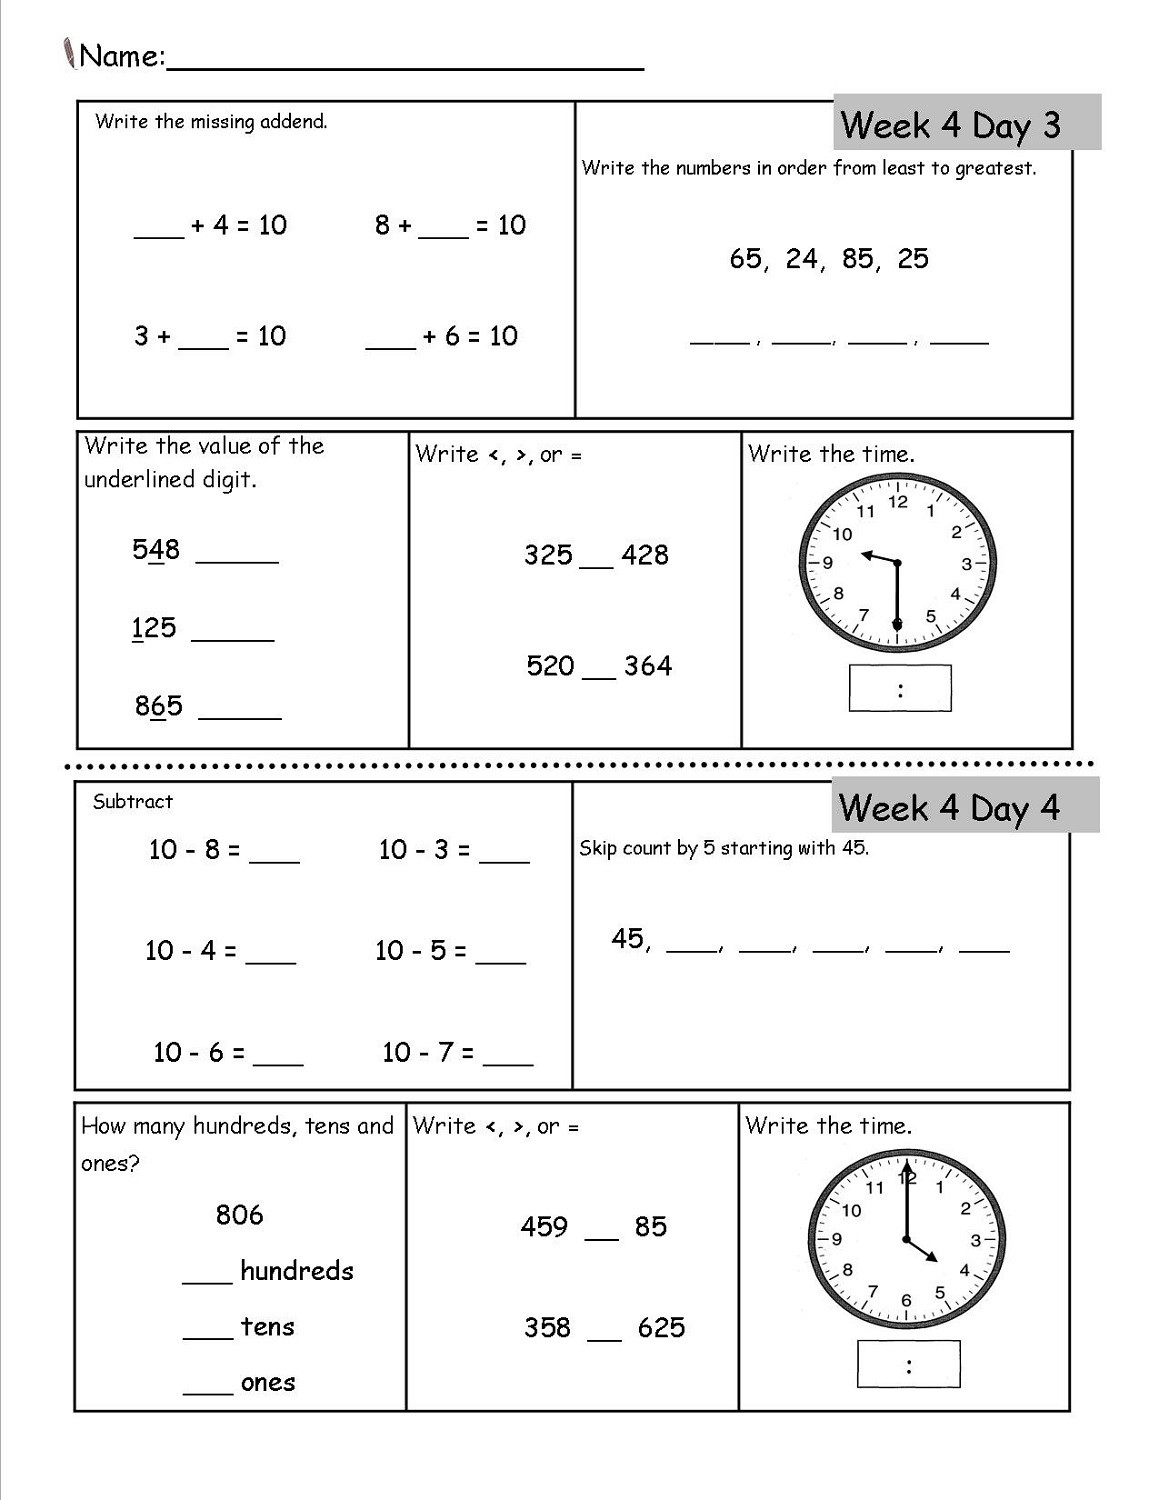 Geometric Shapes Worksheet 2nd Grade Printable Homeschool Worksheets Activity Shelter Free 2nd